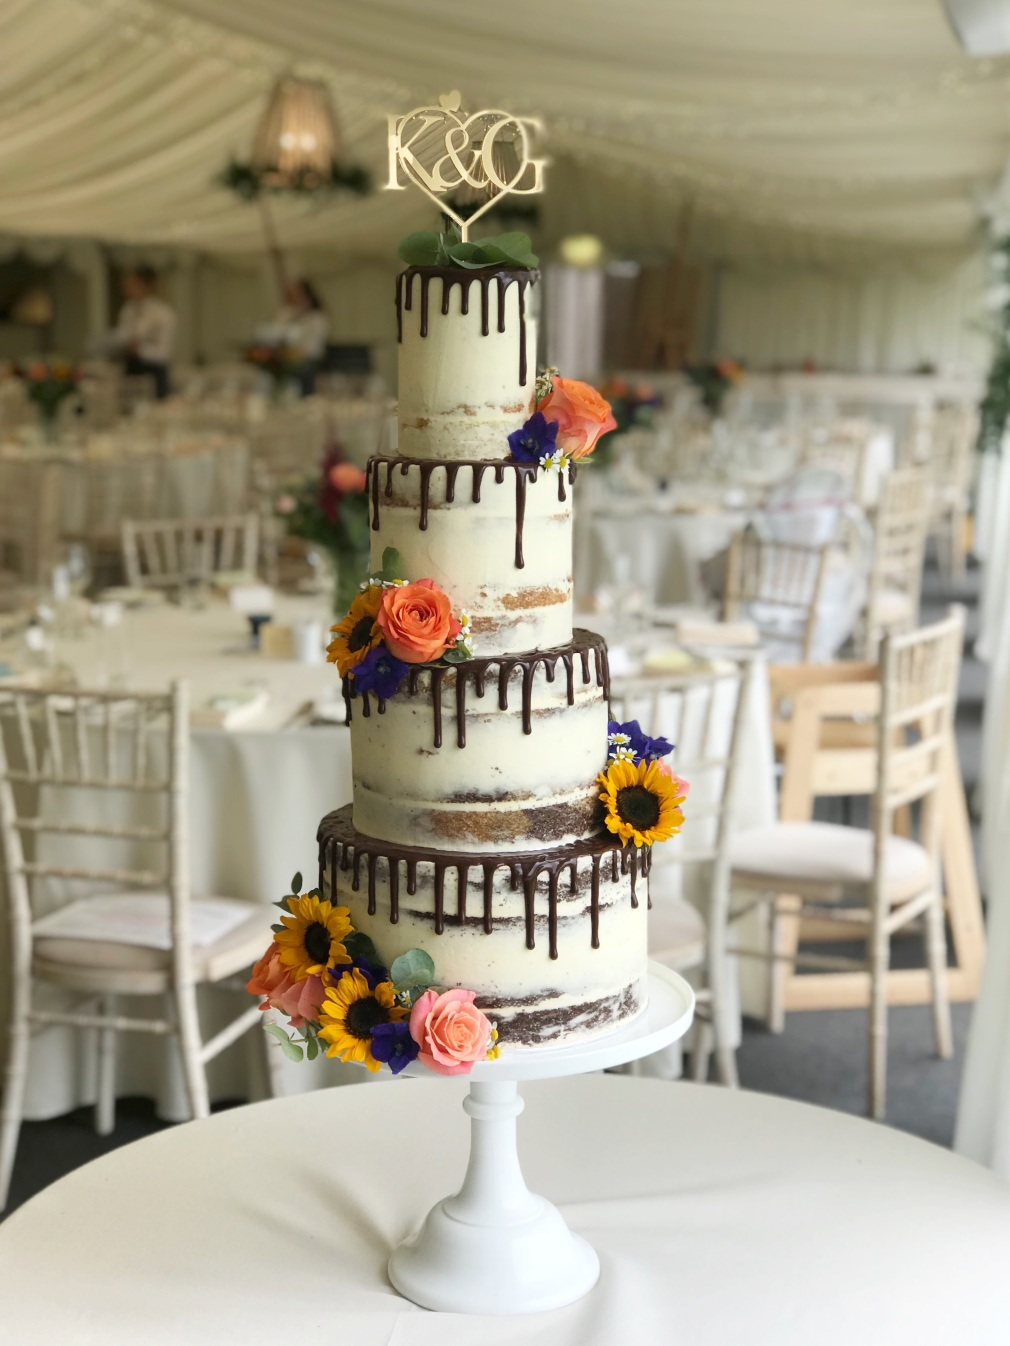 Llanerch vineyard Wedding cake, featuring chocolate drip cake